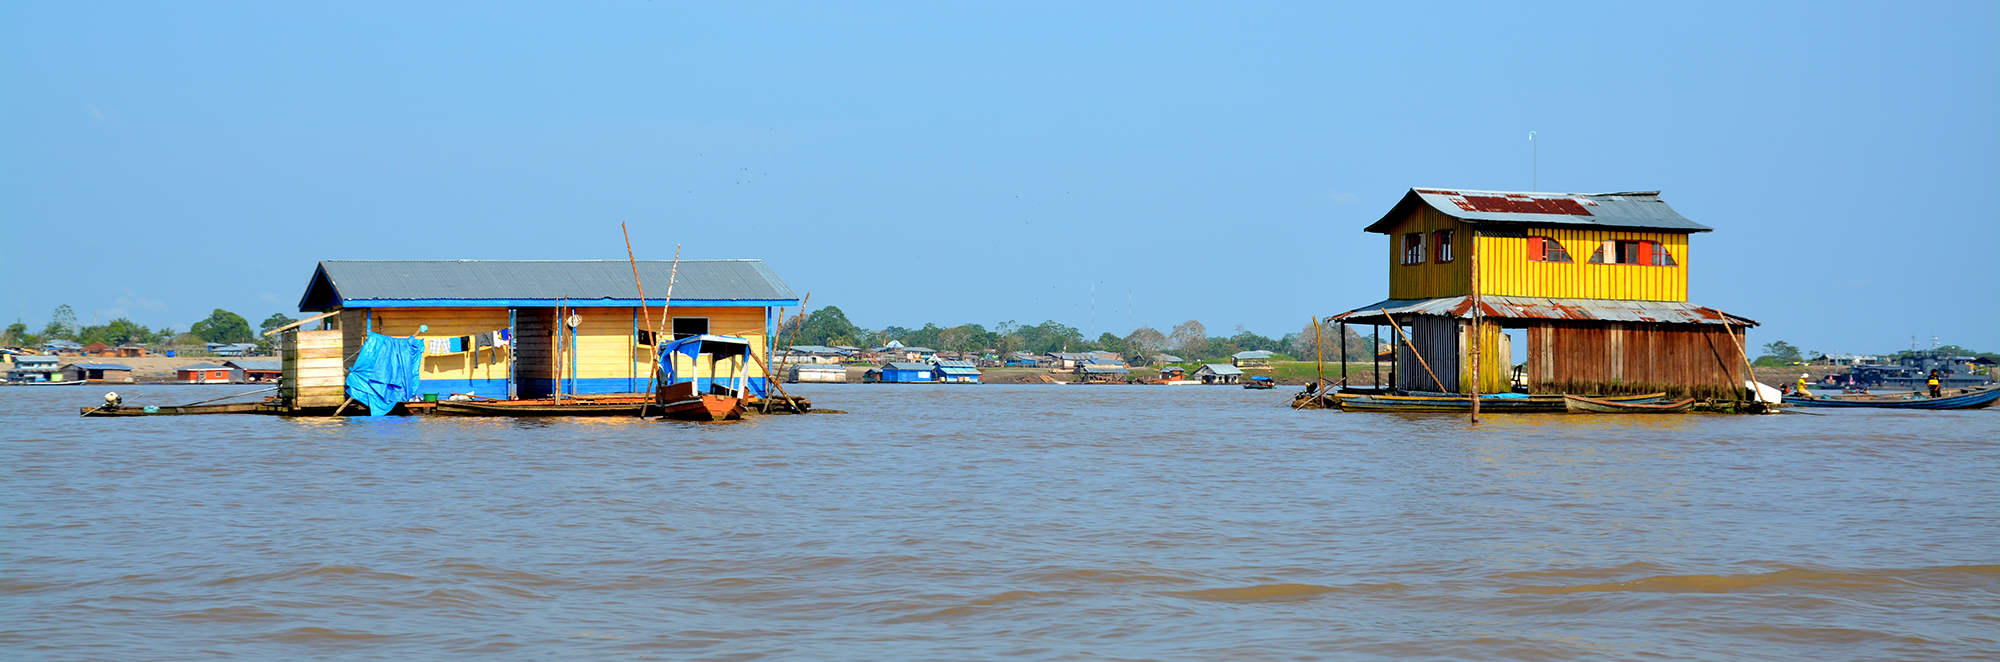 Floating houses on the Amazon